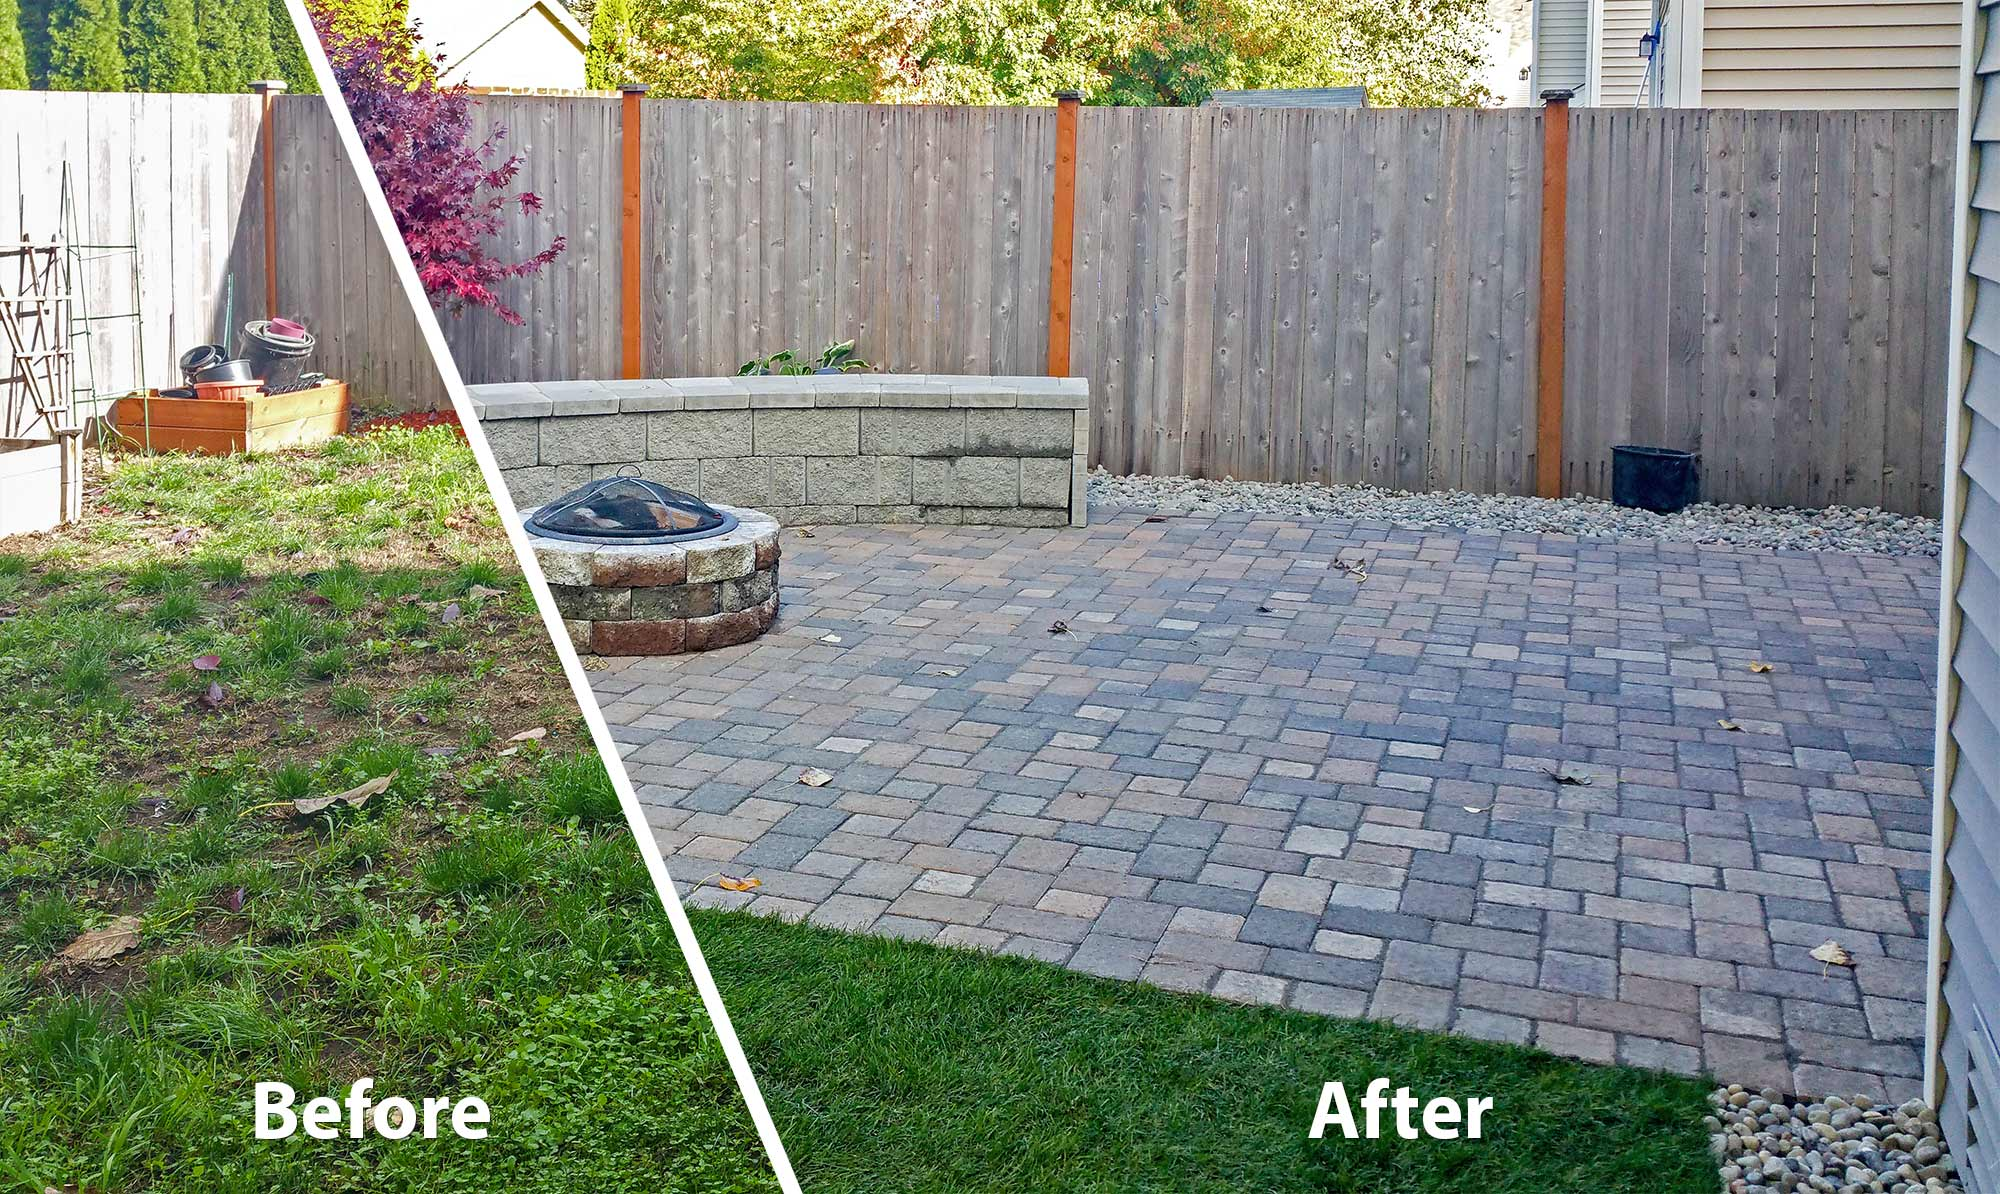 Transform Your Yard With Paver Patio